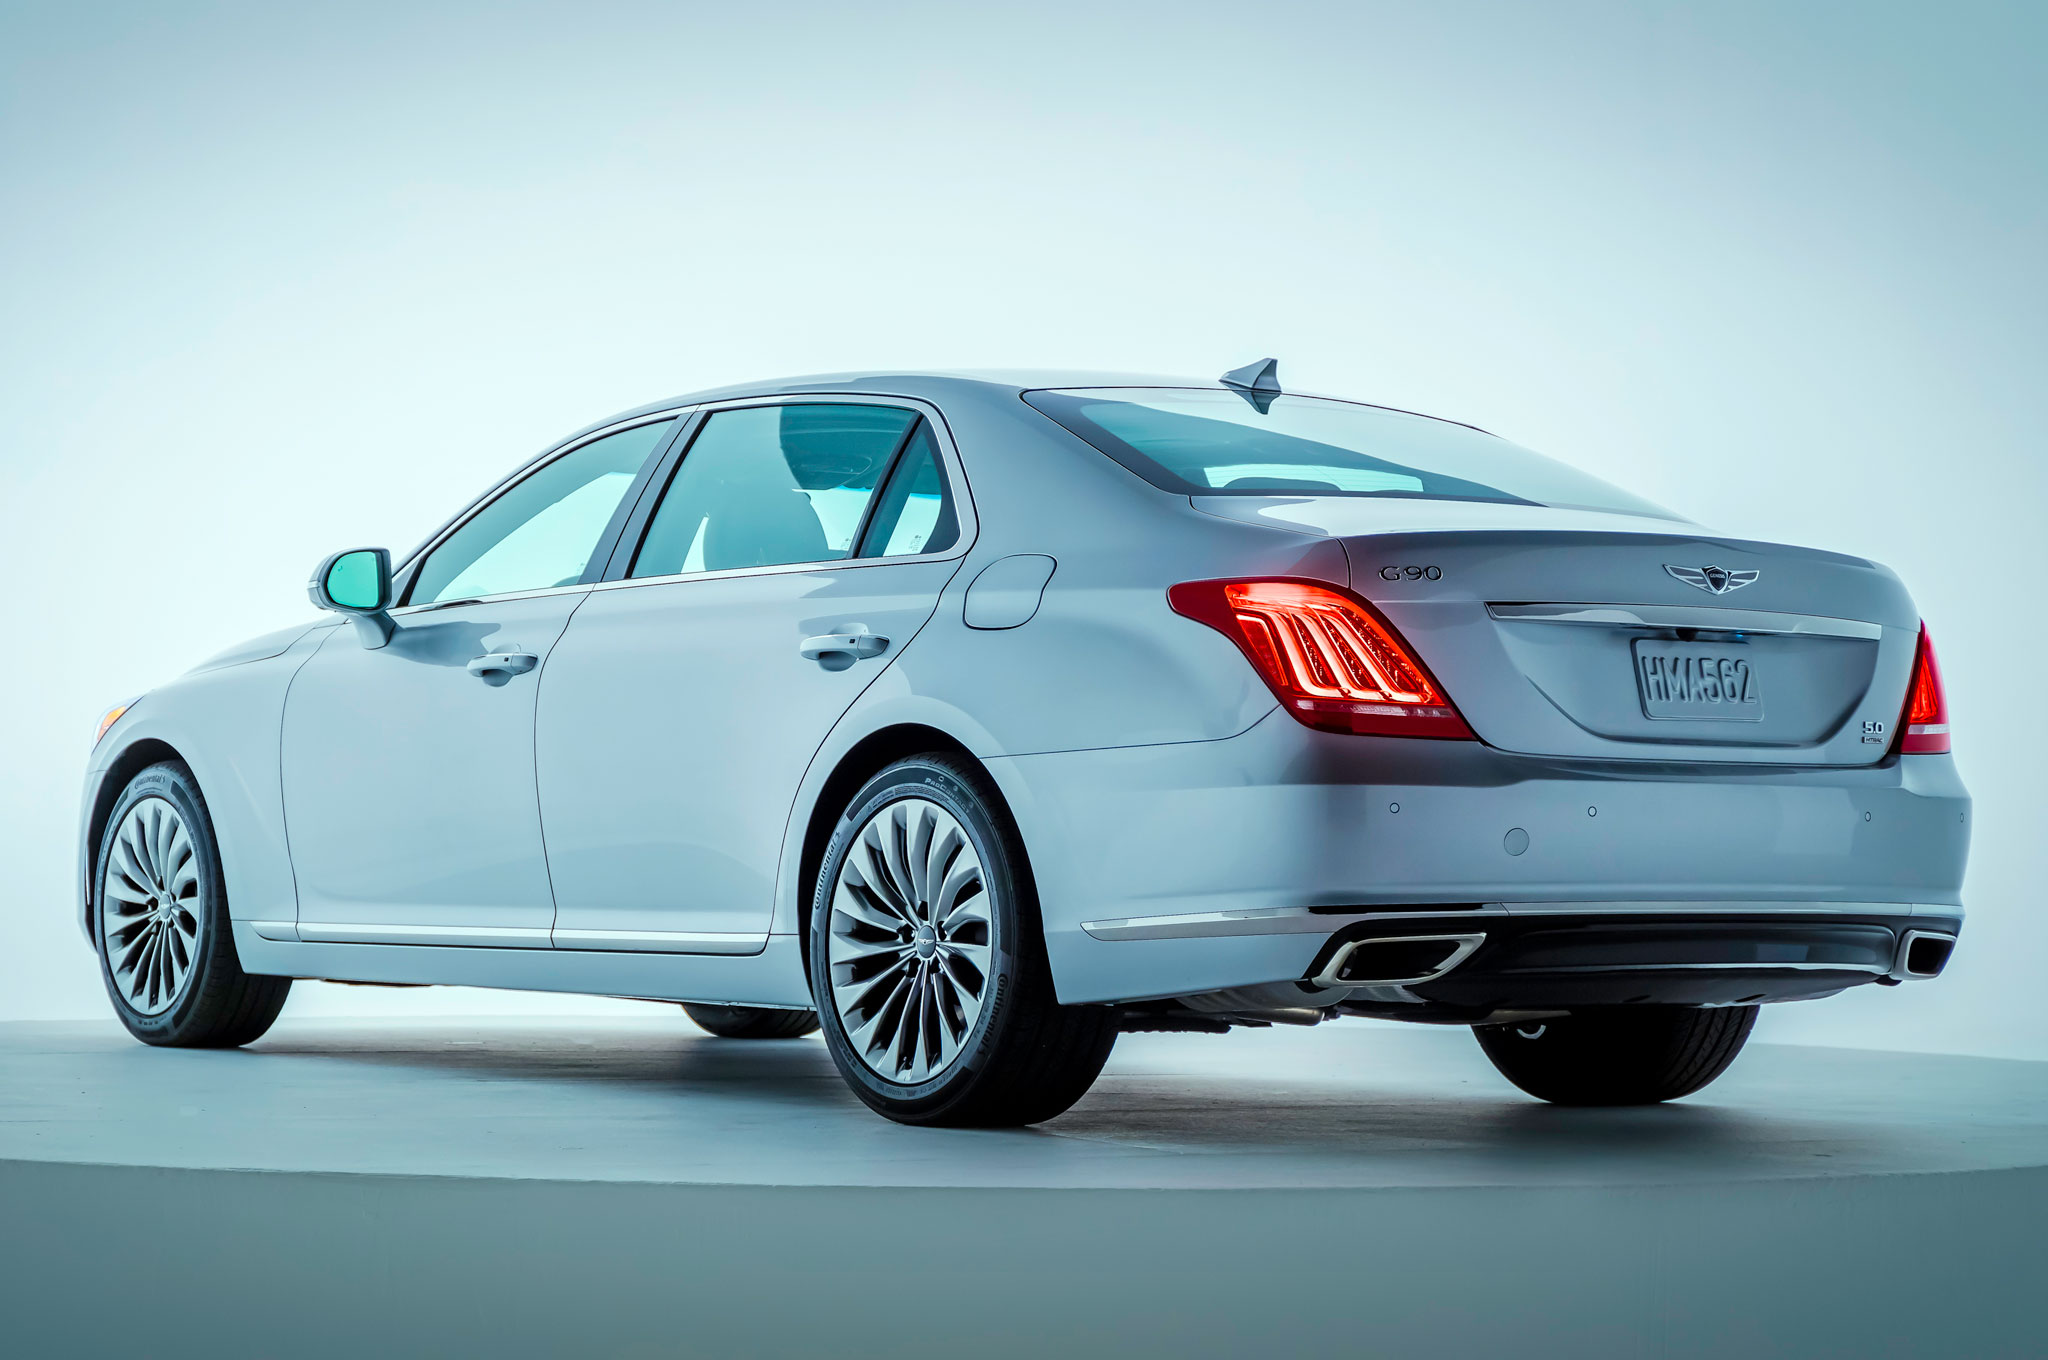 2017 genesis g90 launches hyundai 39 s new luxury brand in. Black Bedroom Furniture Sets. Home Design Ideas